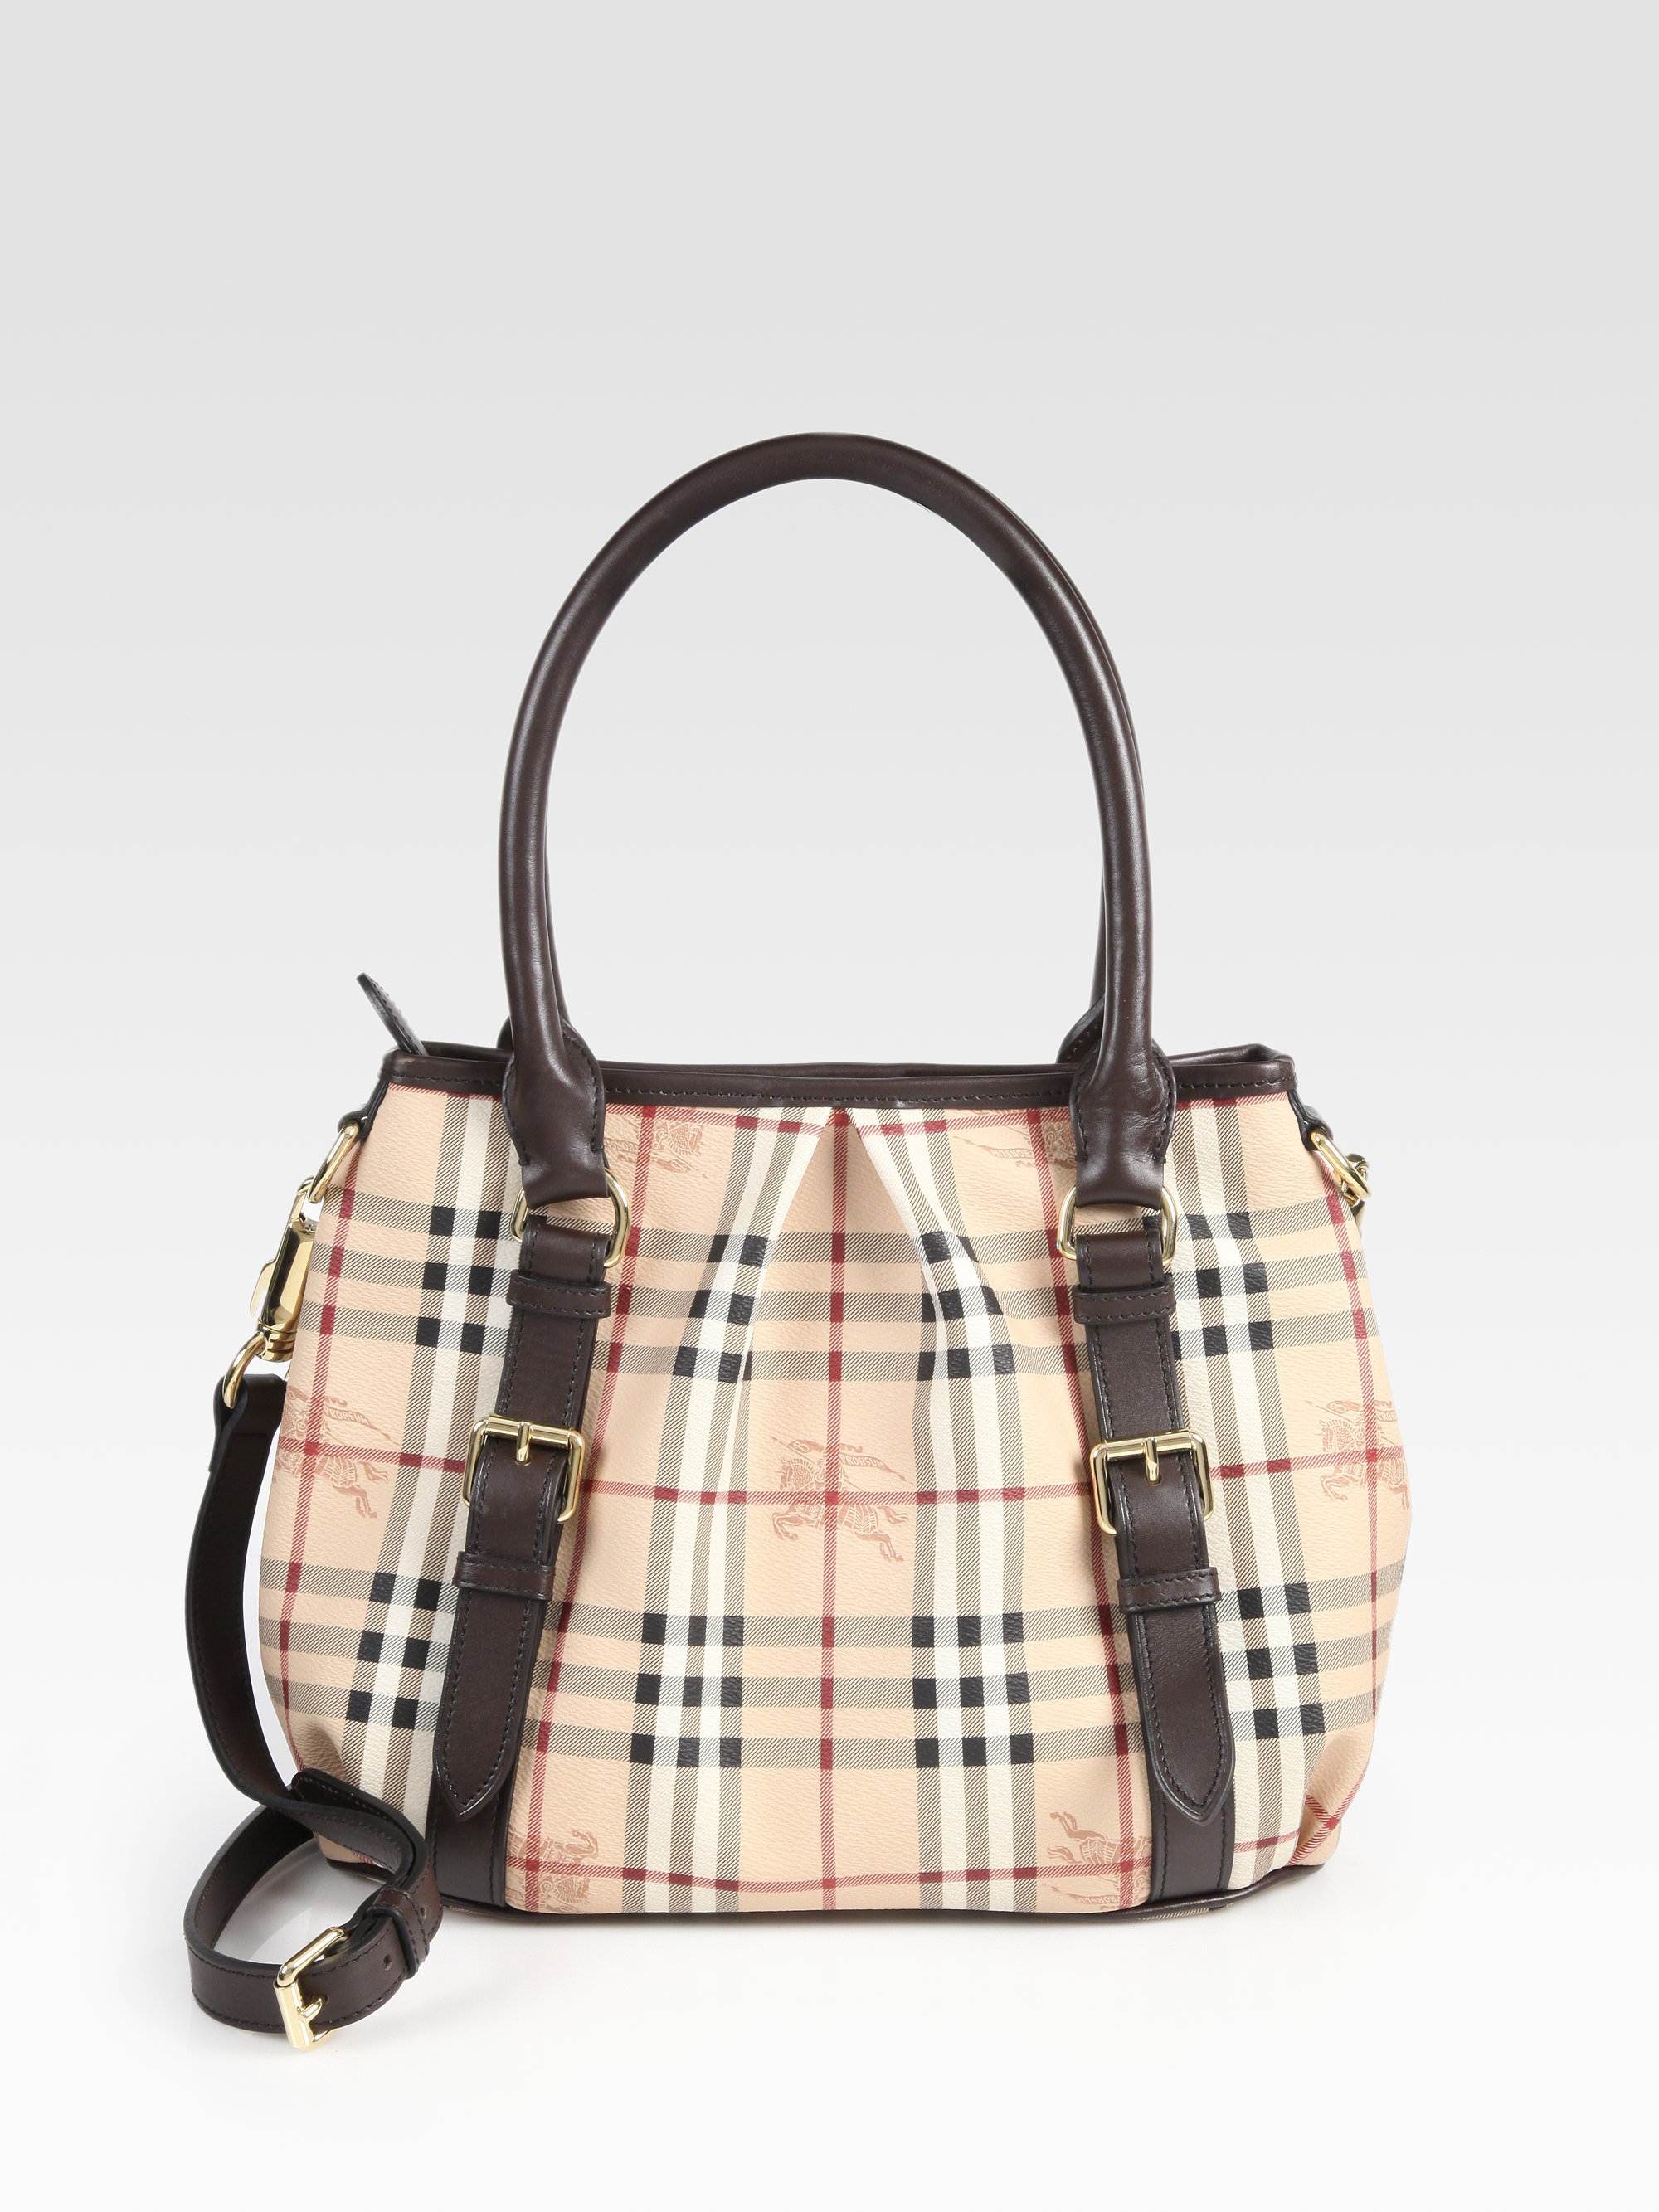 Lyst - Burberry Small Canvas Leather Check Bag in Brown 61cbe99331b4